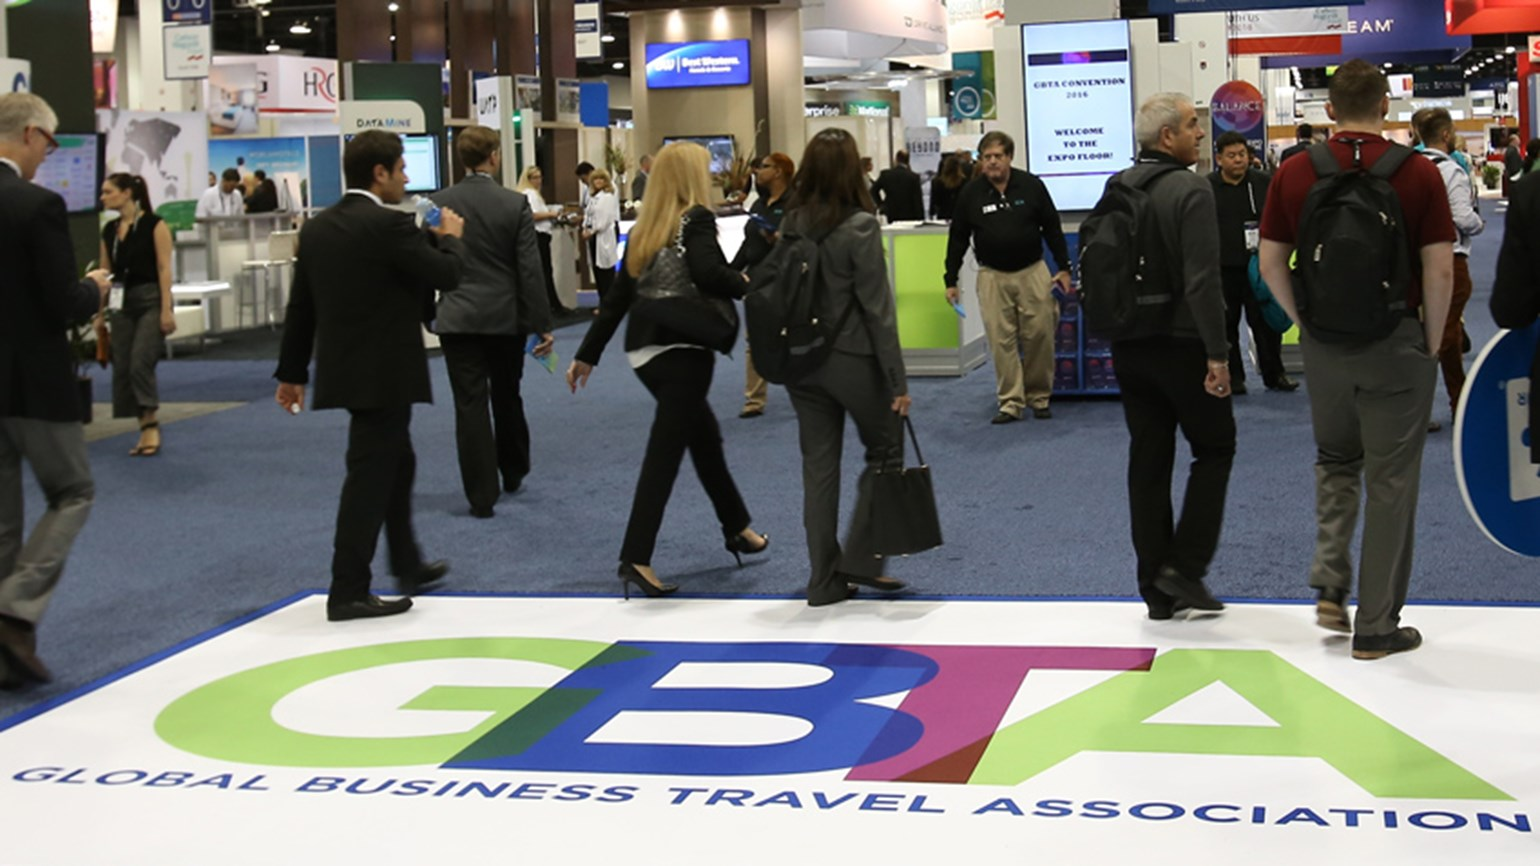 GBTA launches campaign to bring back business travel